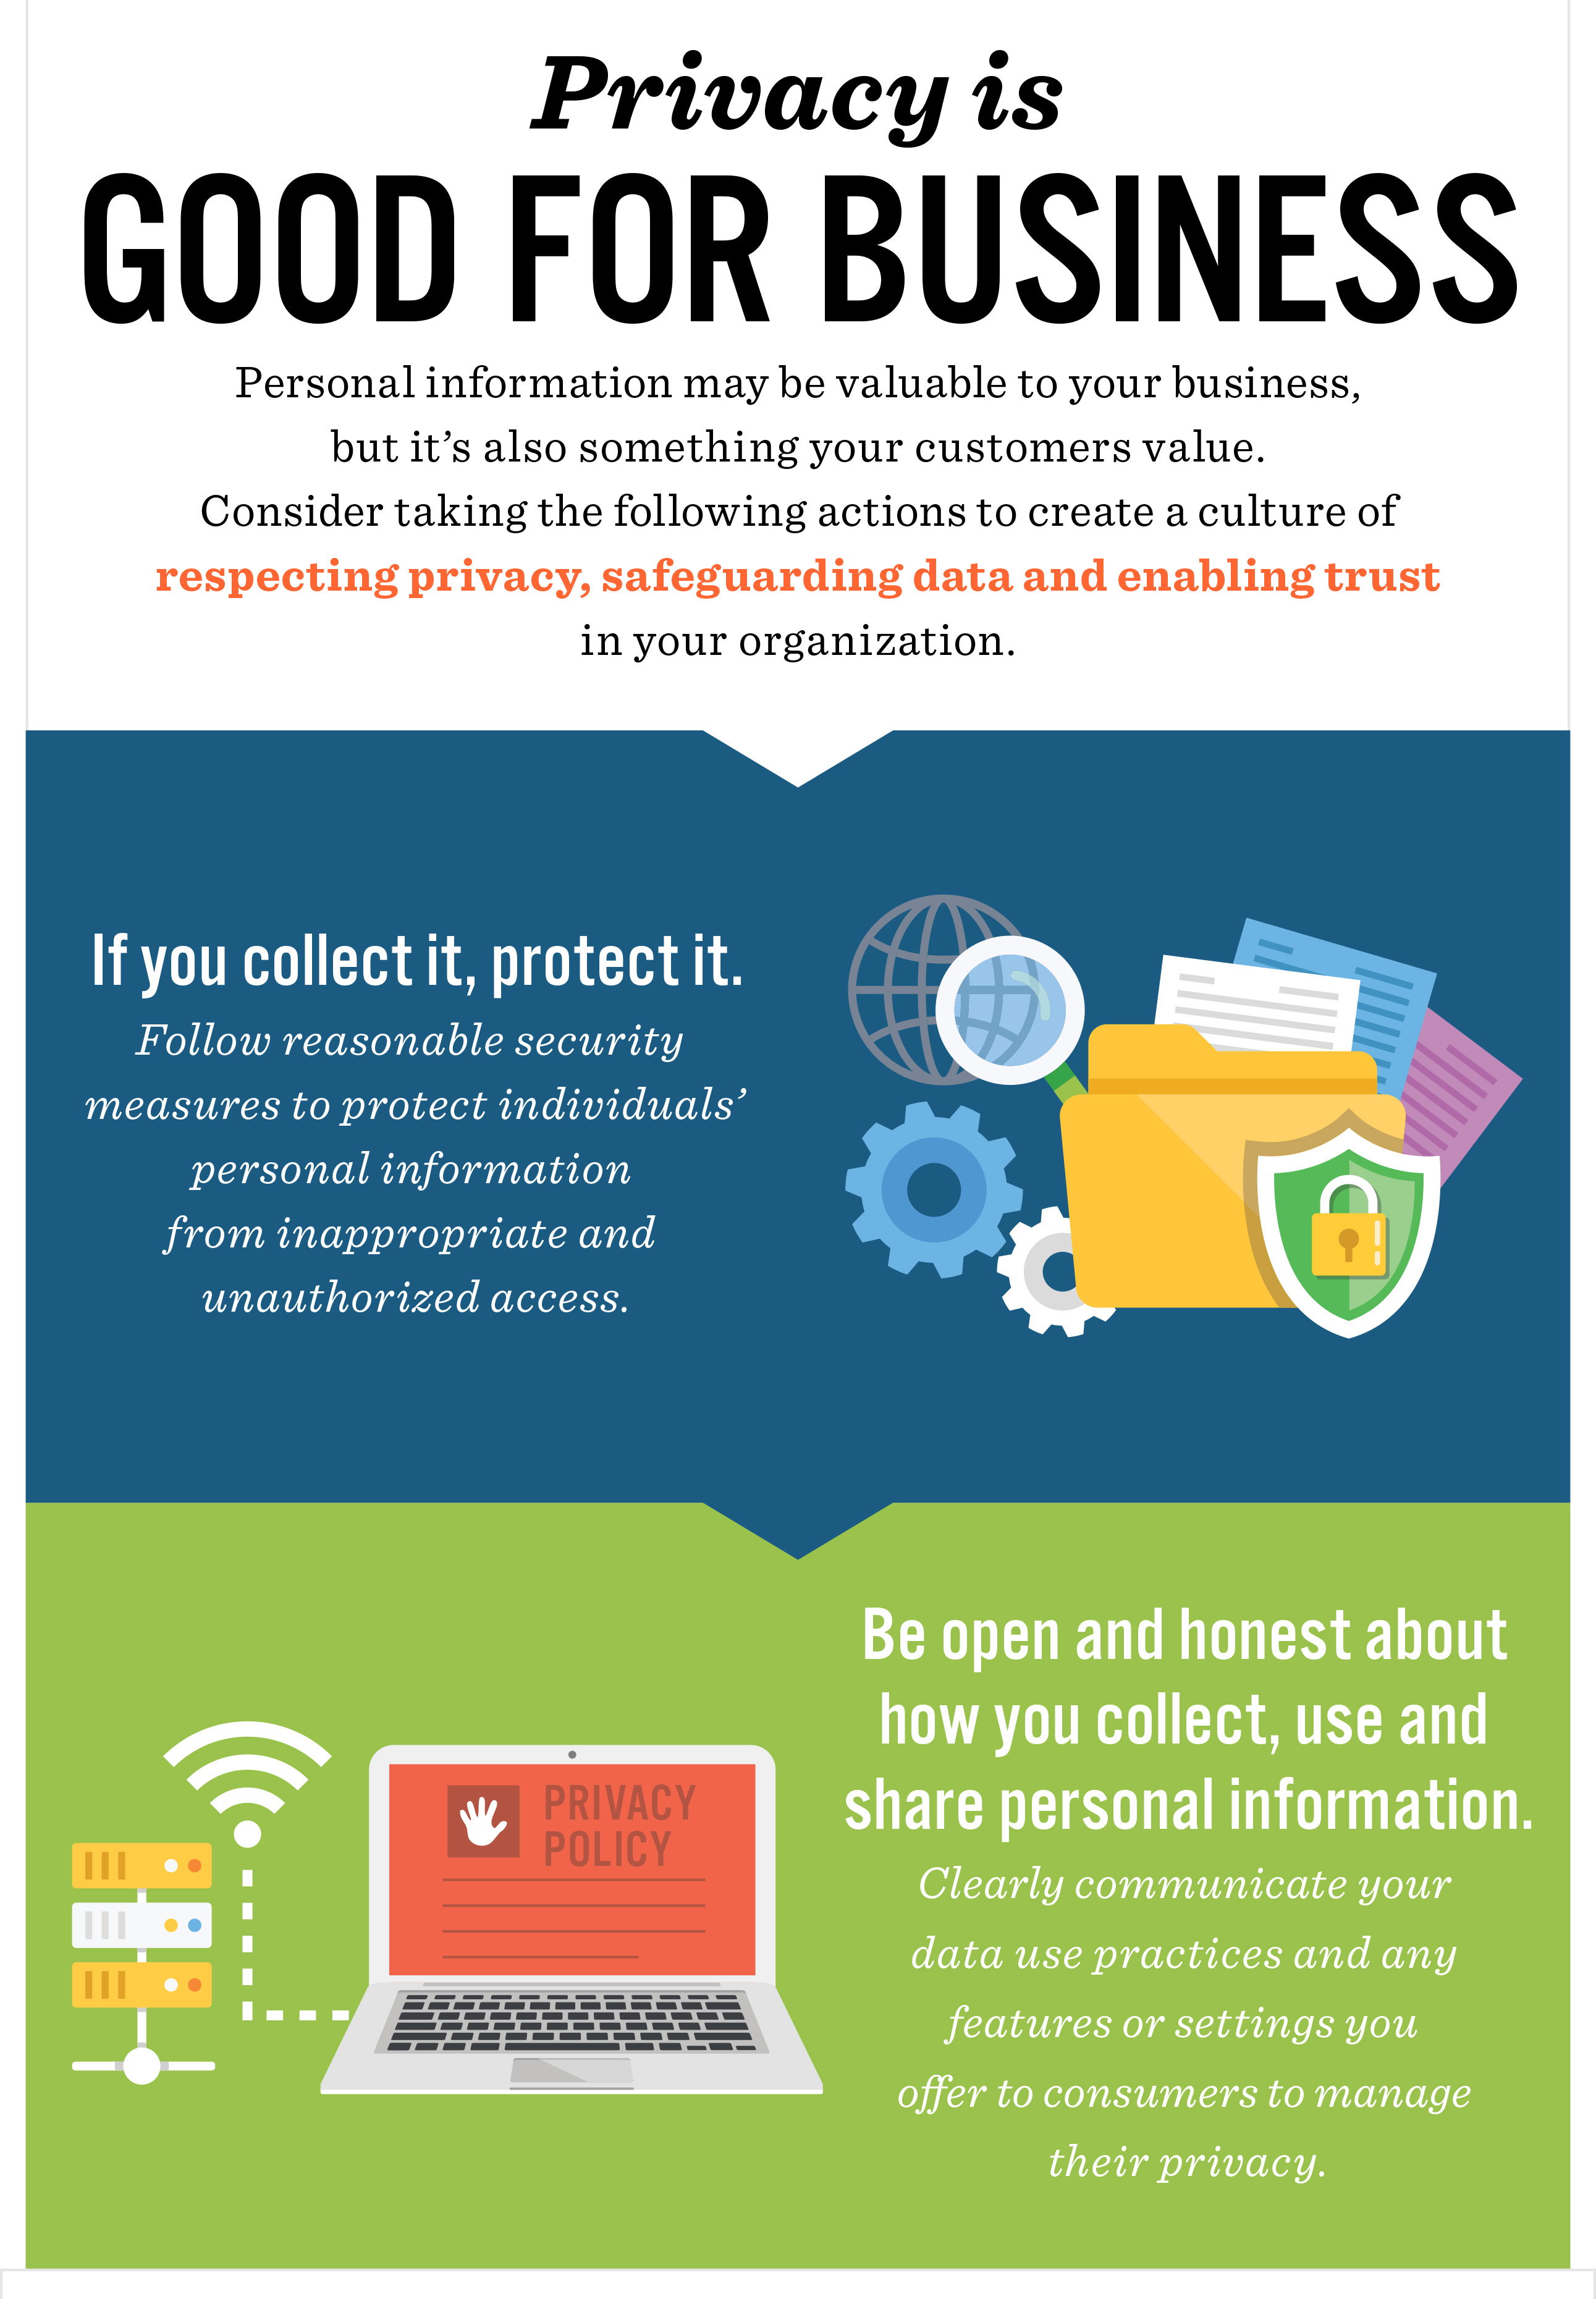 Privacy_Is_Good_For_Business_Infographic_DPD2017-preview copy